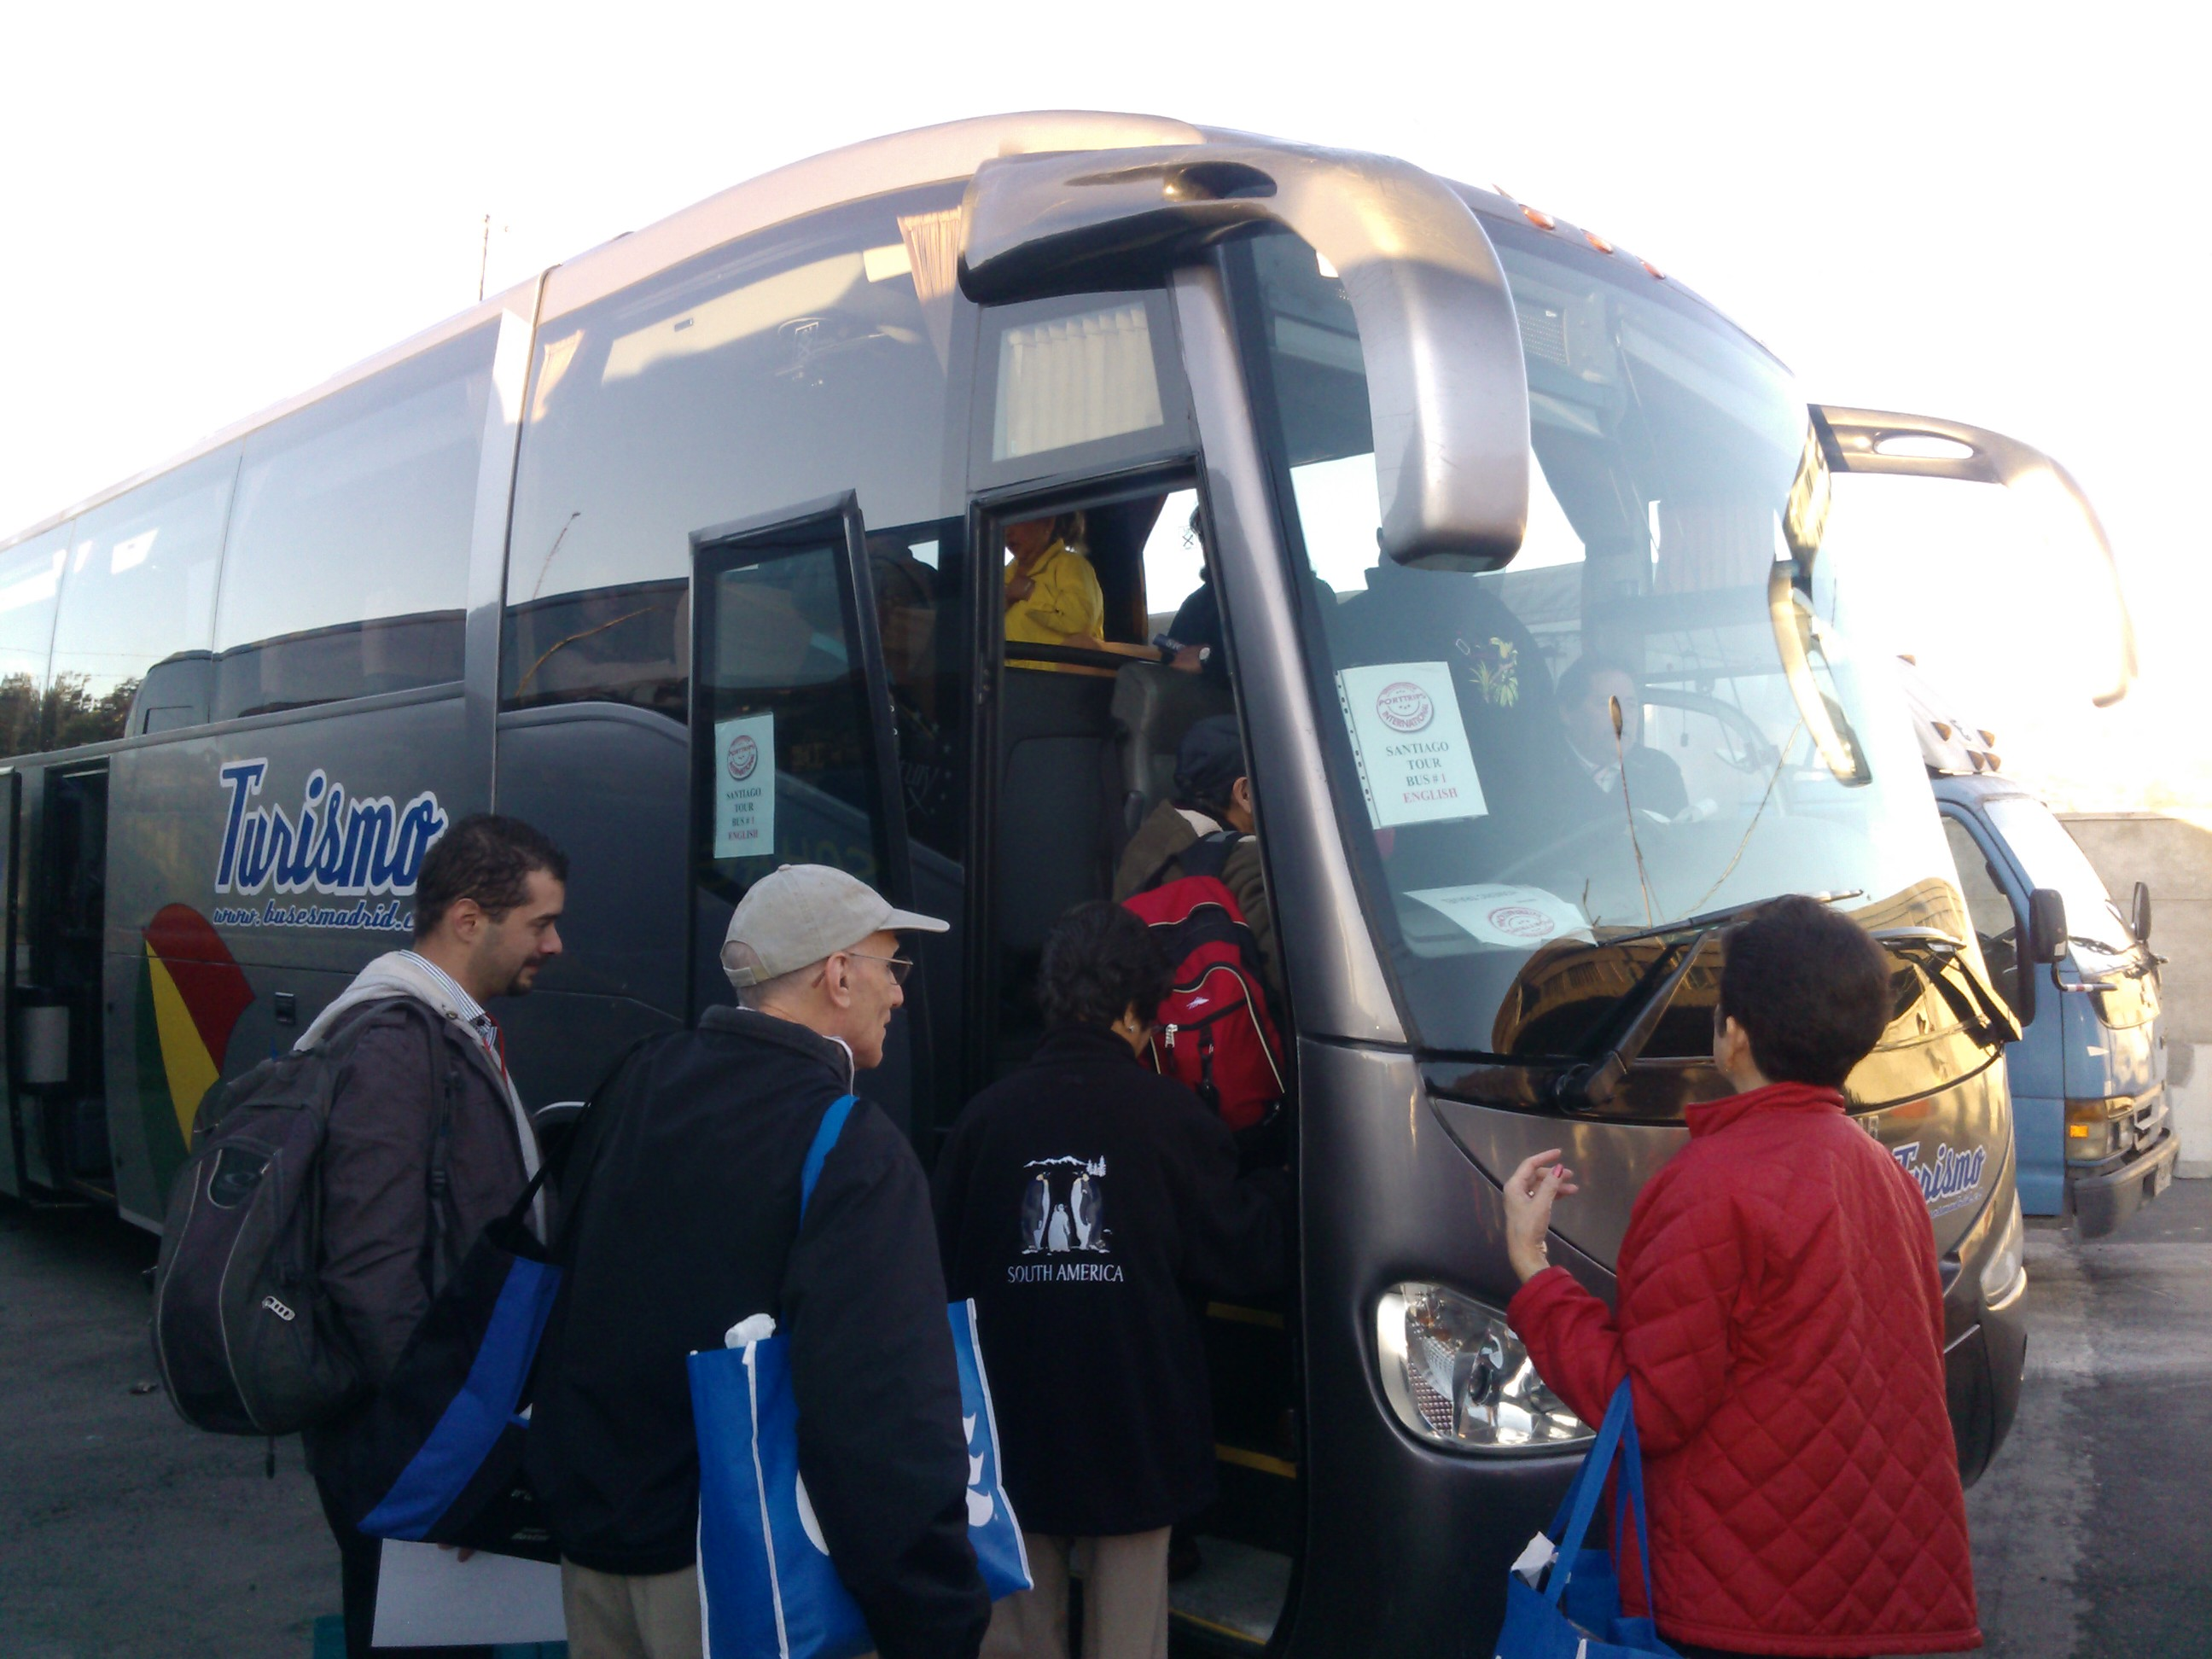 Boarding the bus to star the excursion Valparaiso Chile